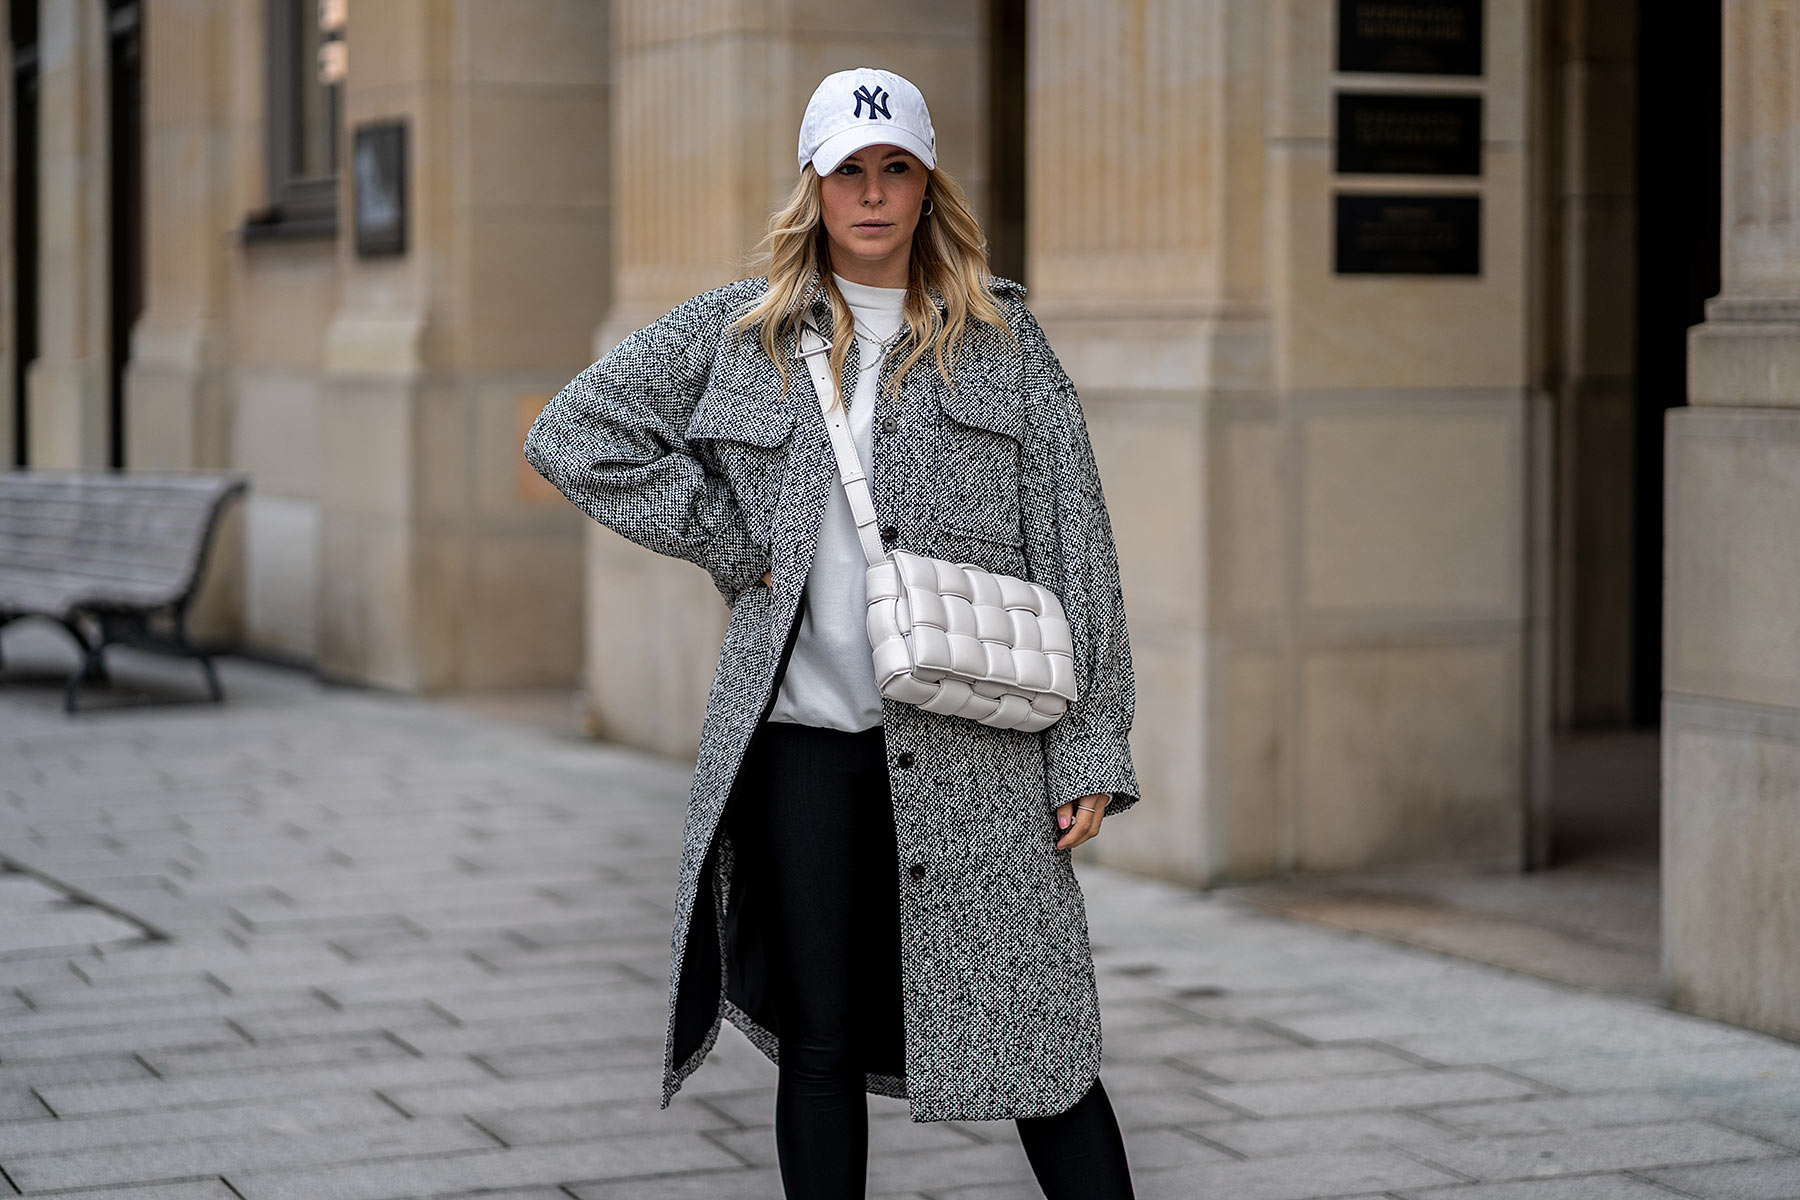 ny cap weiss outfit mode blogger shacket grau inga brauer